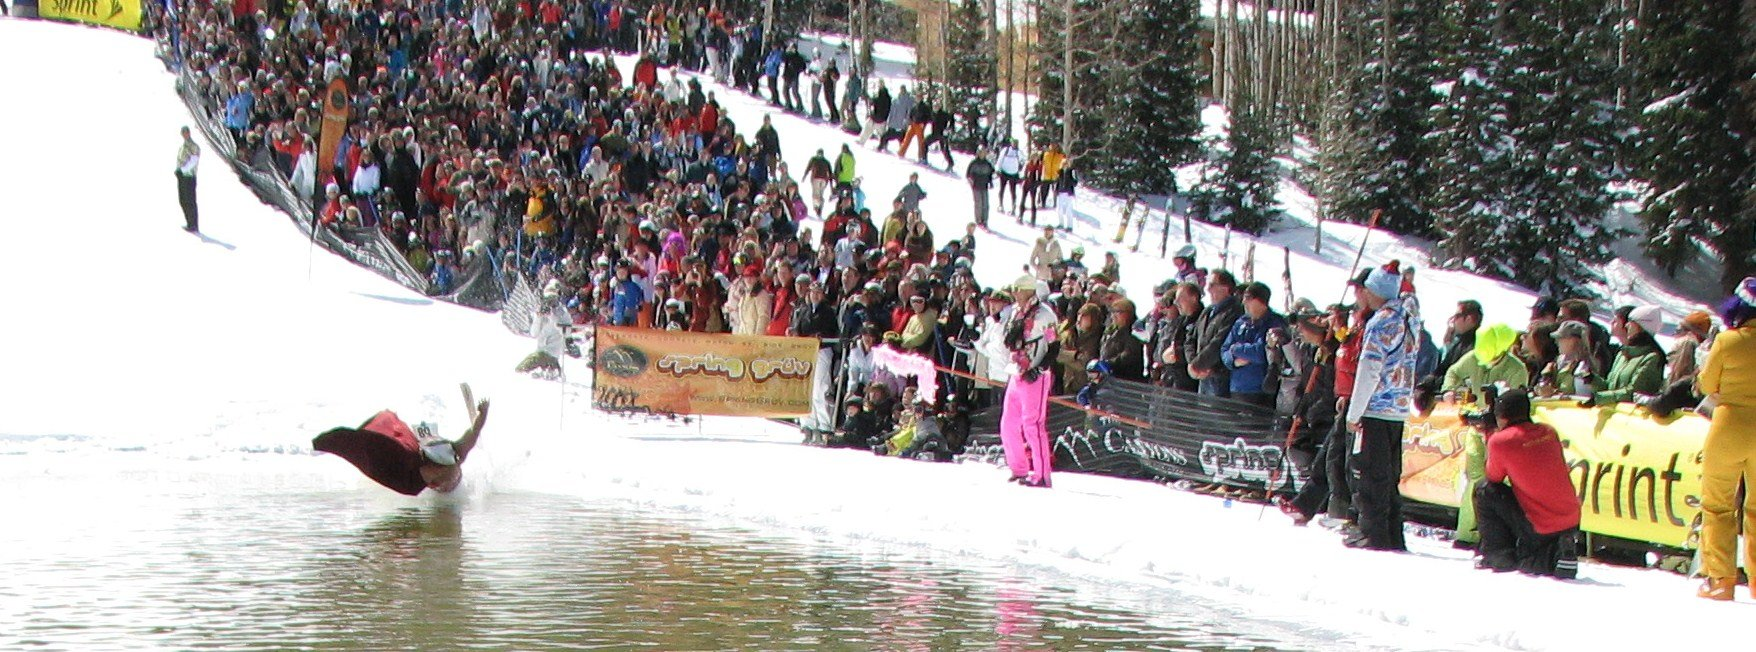 Spring Gruv competitions, The Canyons, UT